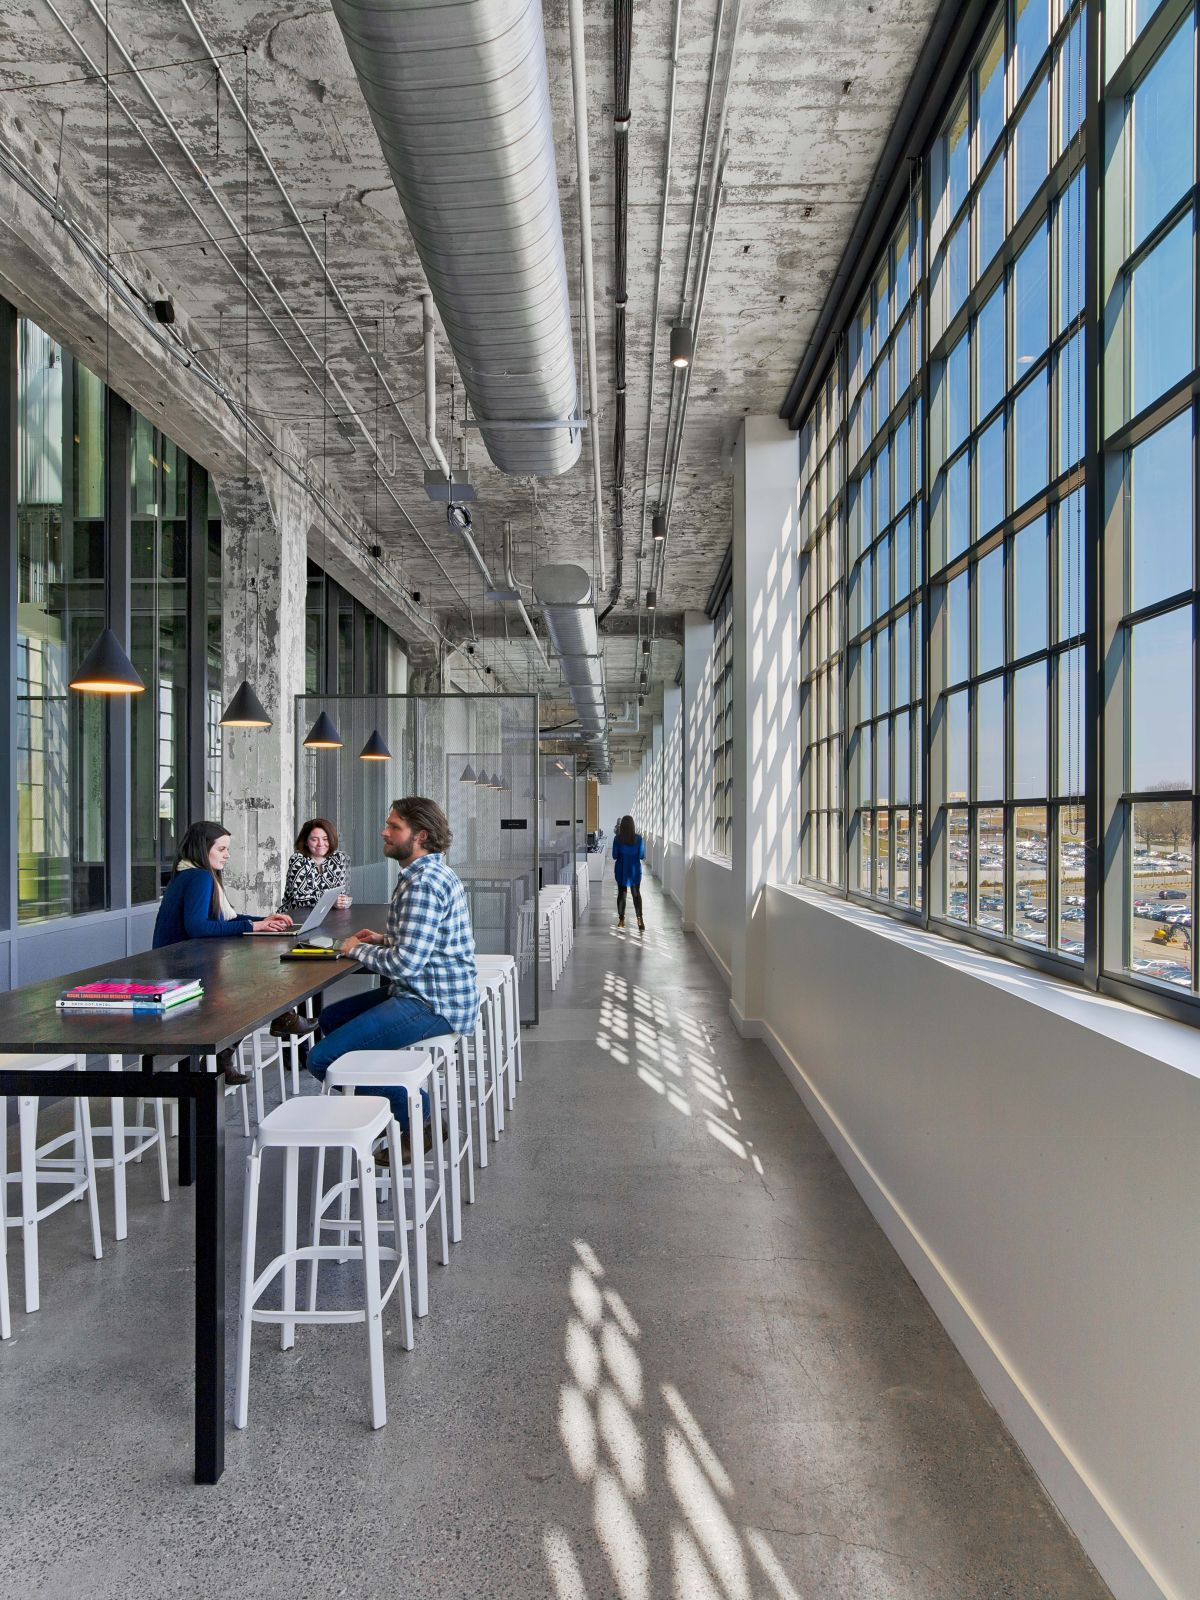 The area is good for employees to spread out and work, alone or in collaboration.